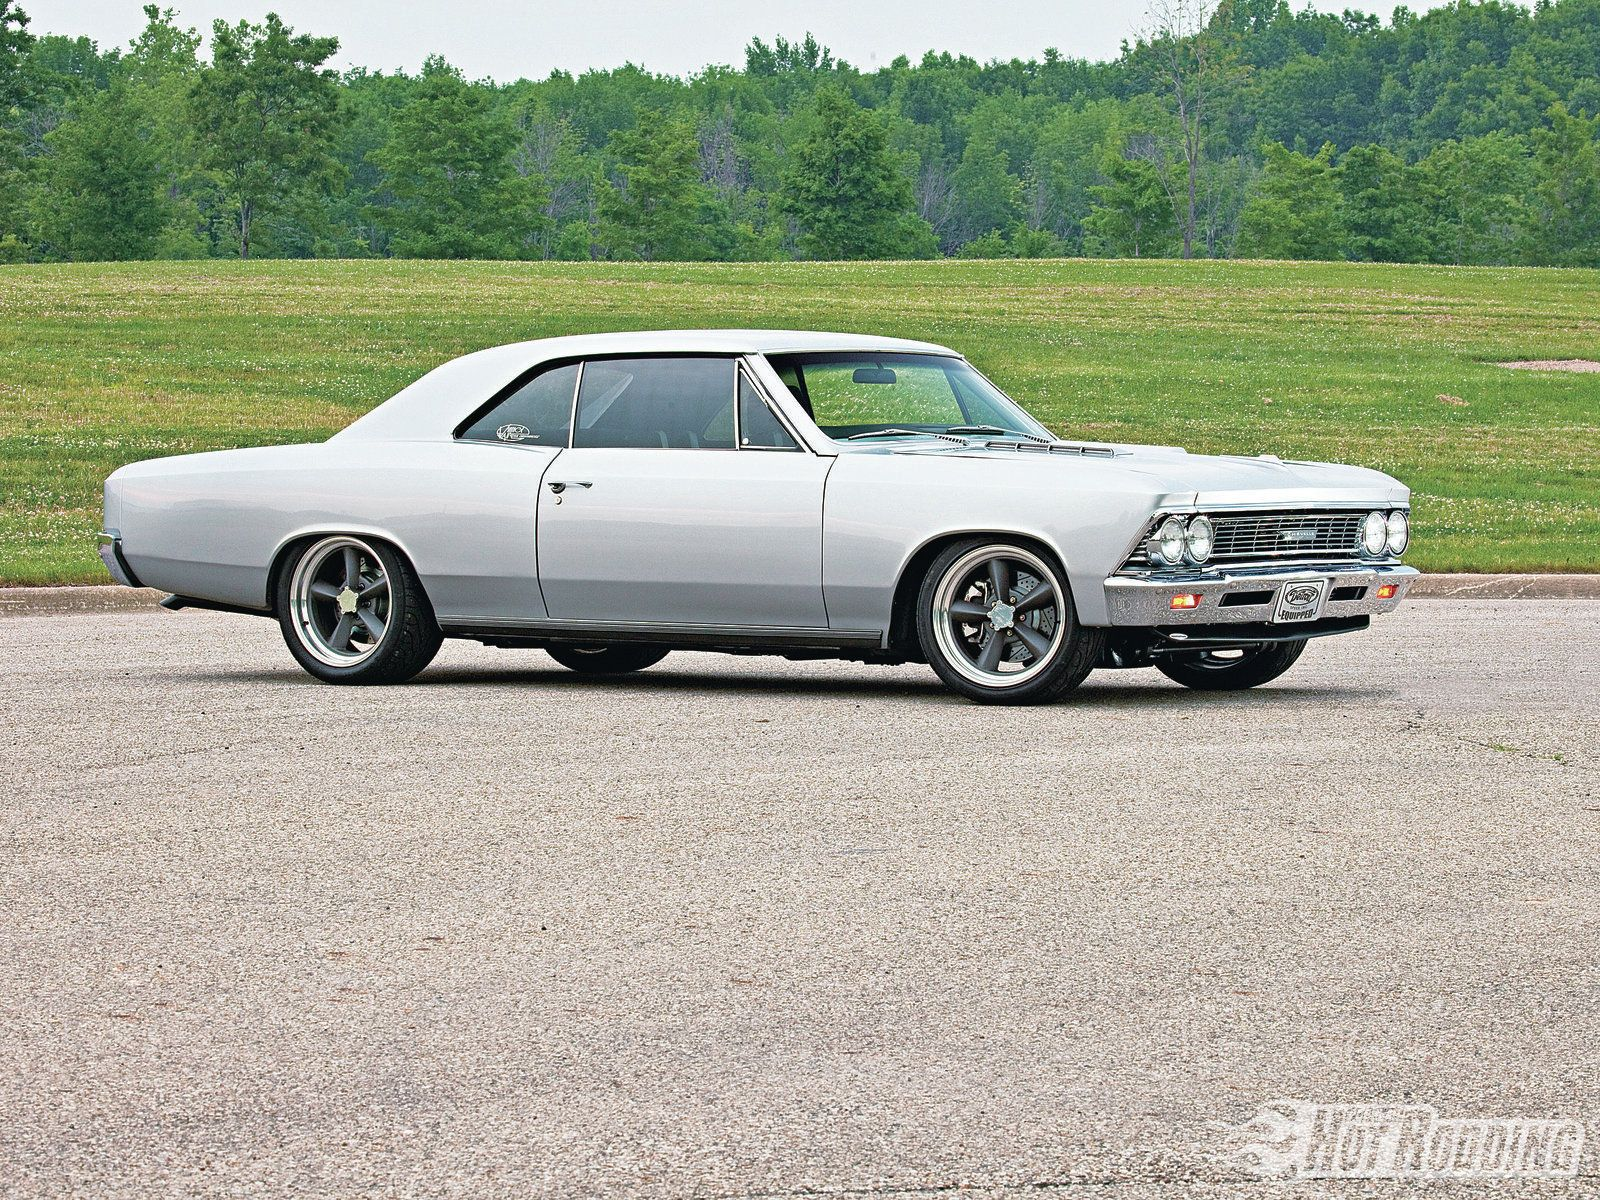 1966 Chevelle Malibu | SLEEK RIDES | Pinterest | 1966 chevelle, Cars ...